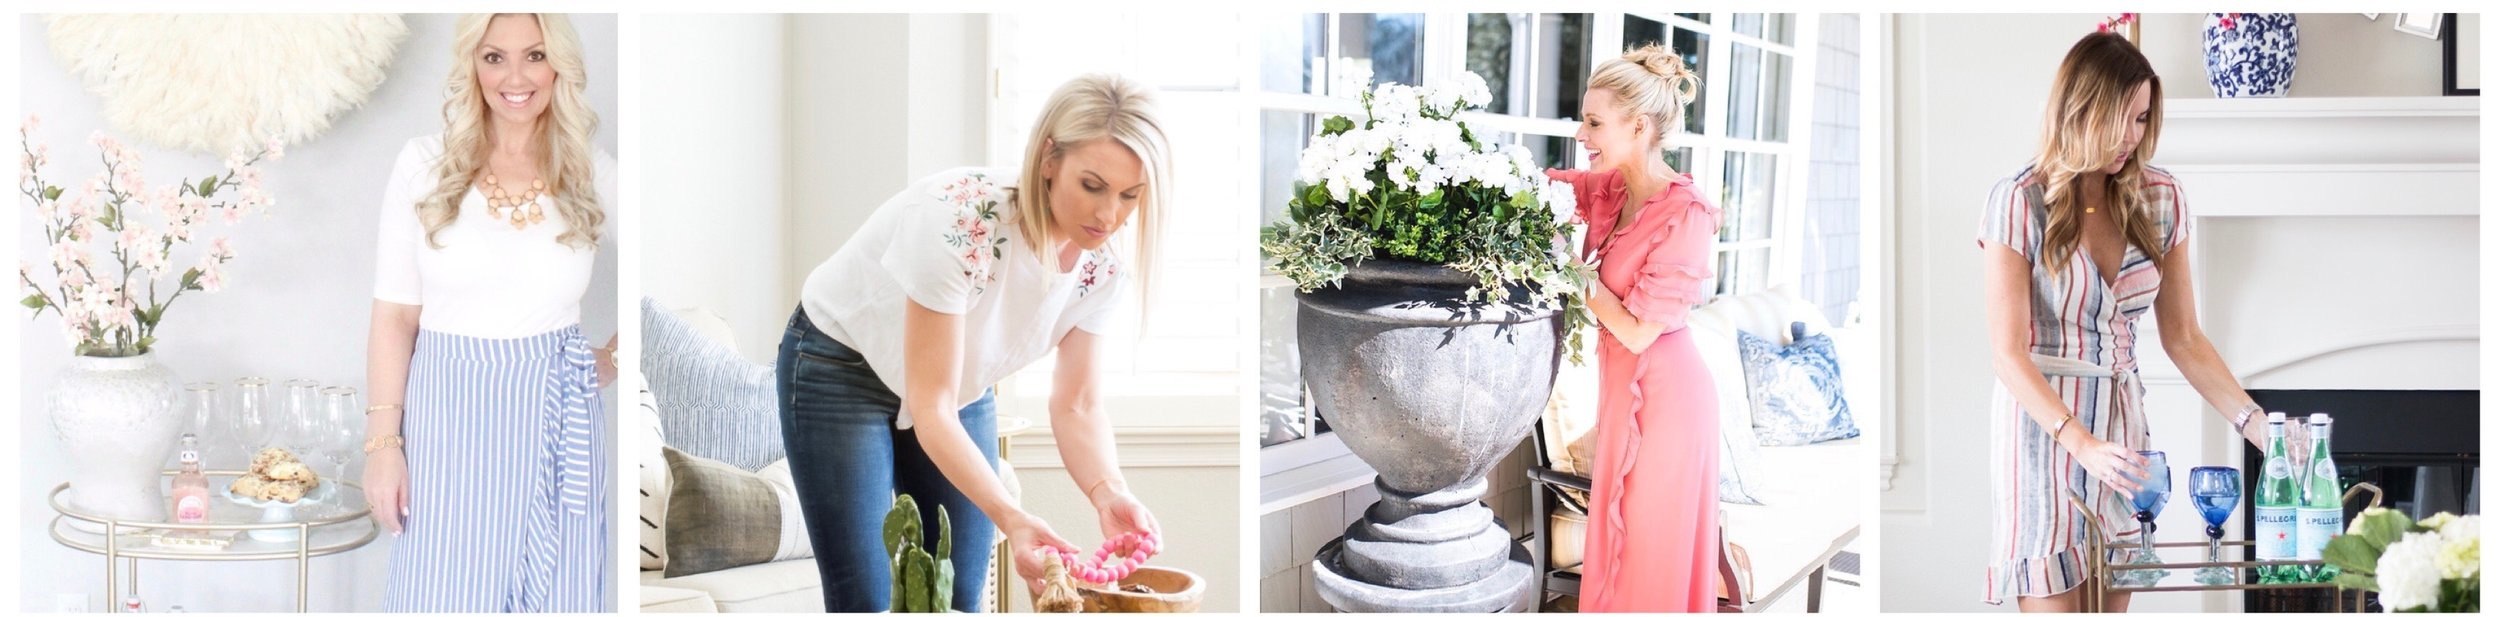 Loveliest Looks of Spring Tour - Spring decor and style blog hop